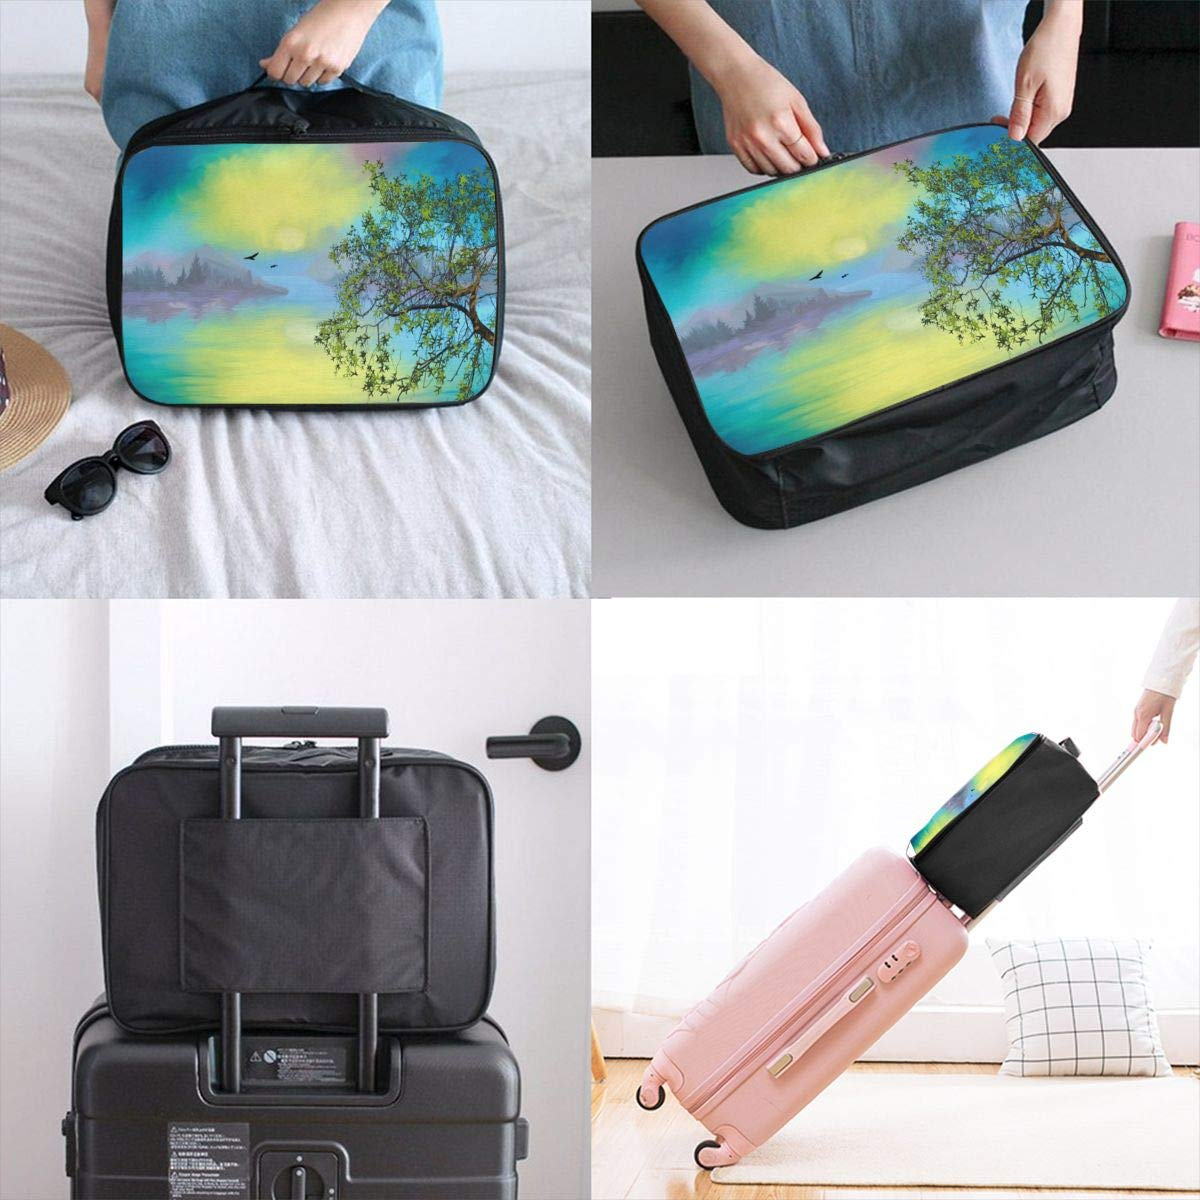 Bird Art Painting Tree Natural Sunset Travel Lightweight Waterproof Foldable Storage Carry Luggage Large Capacity Portable Luggage Bag Duffel Bag